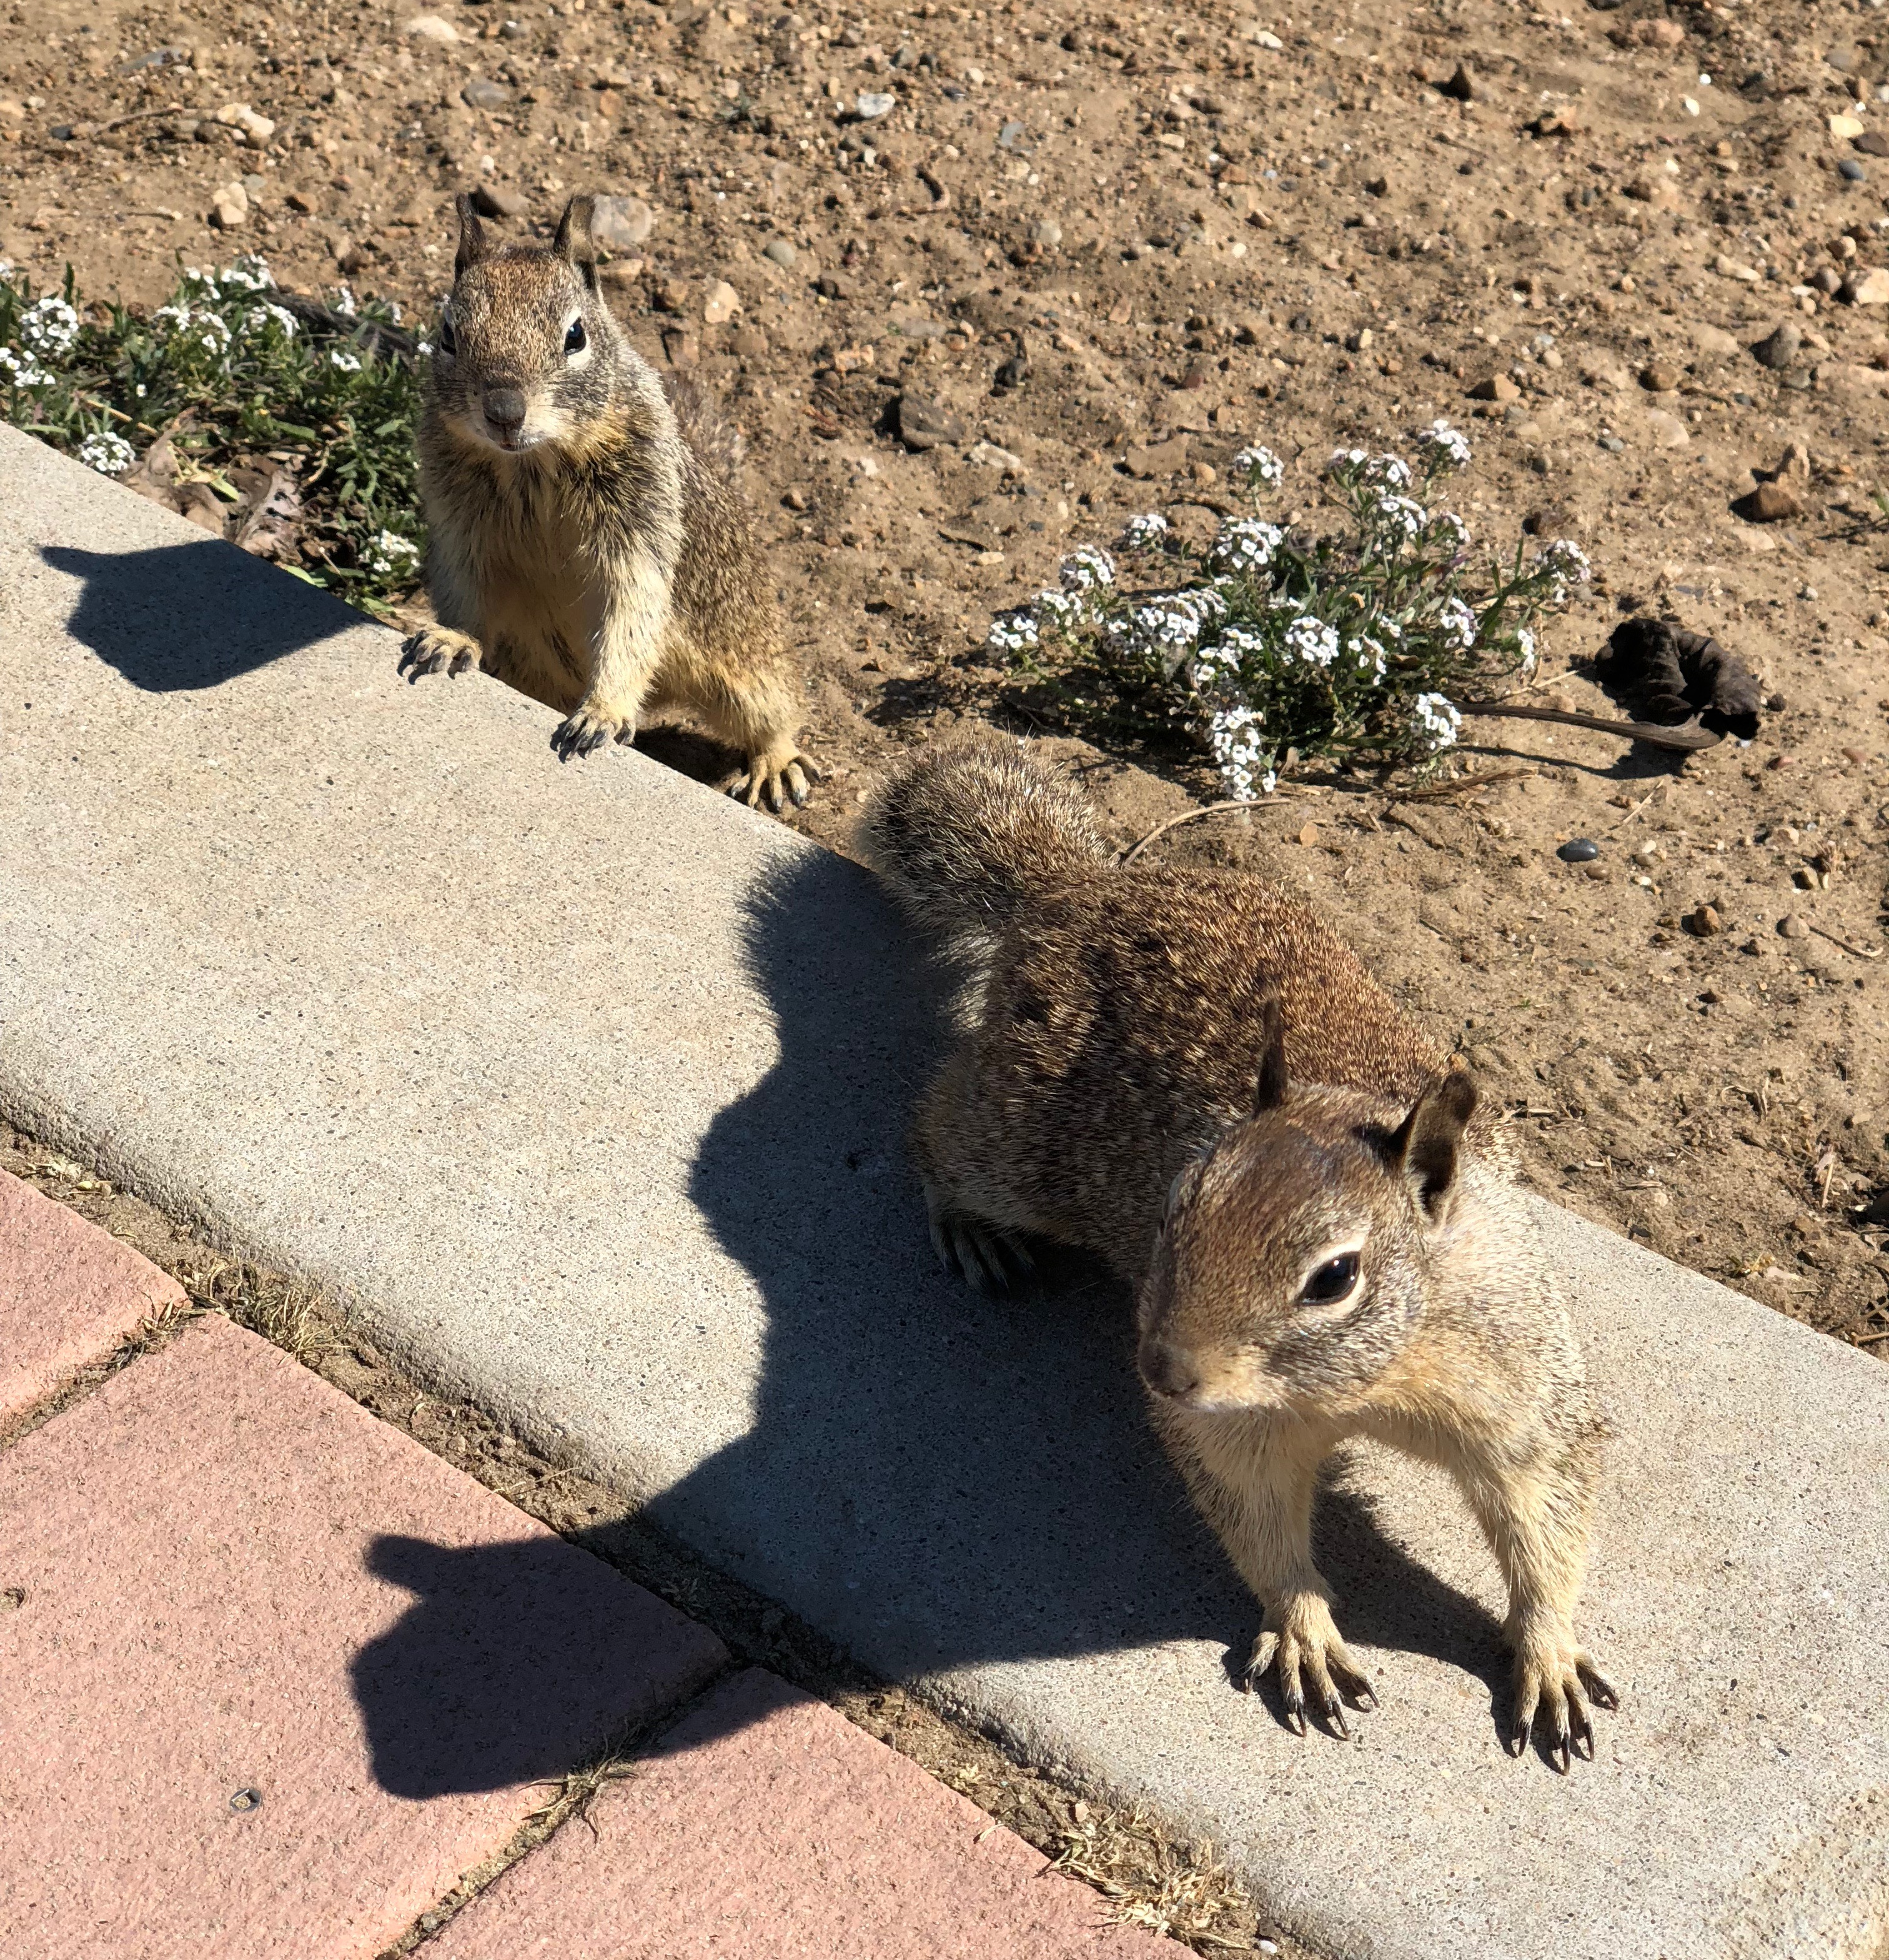 Two Ground Squirrels Uncomfortably Close To Photographer